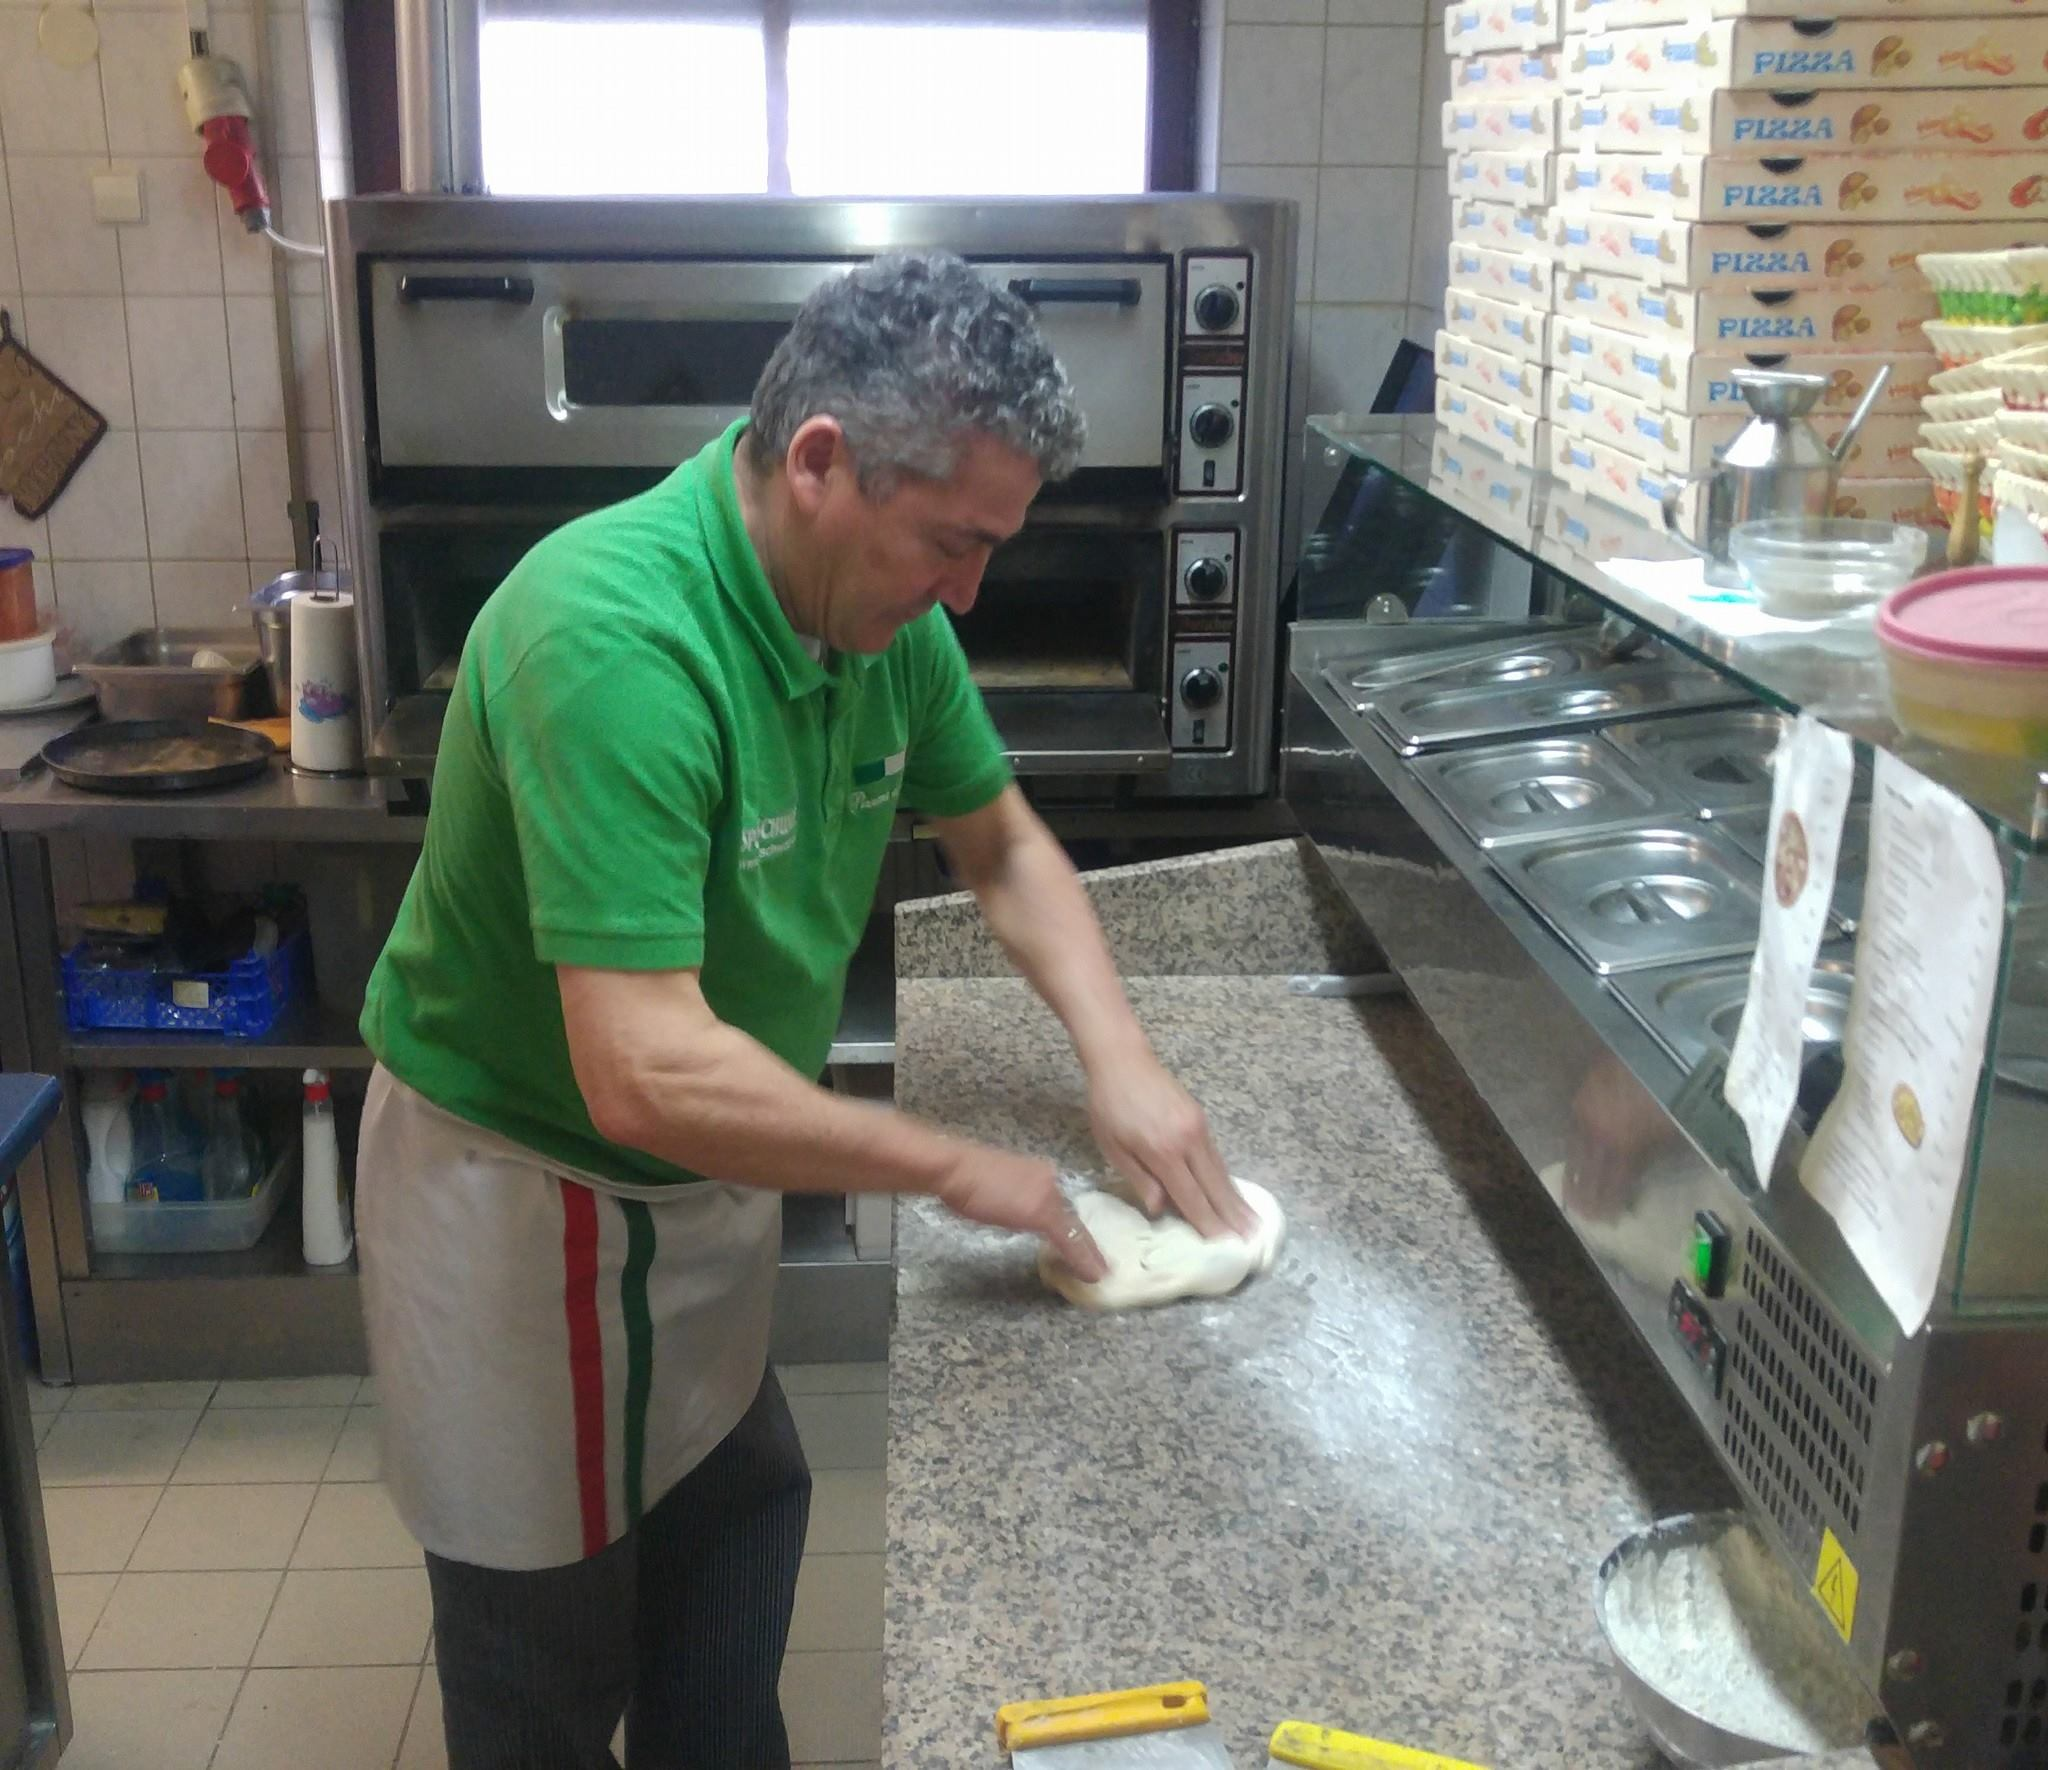 Pizzeria da Michele -  Chef